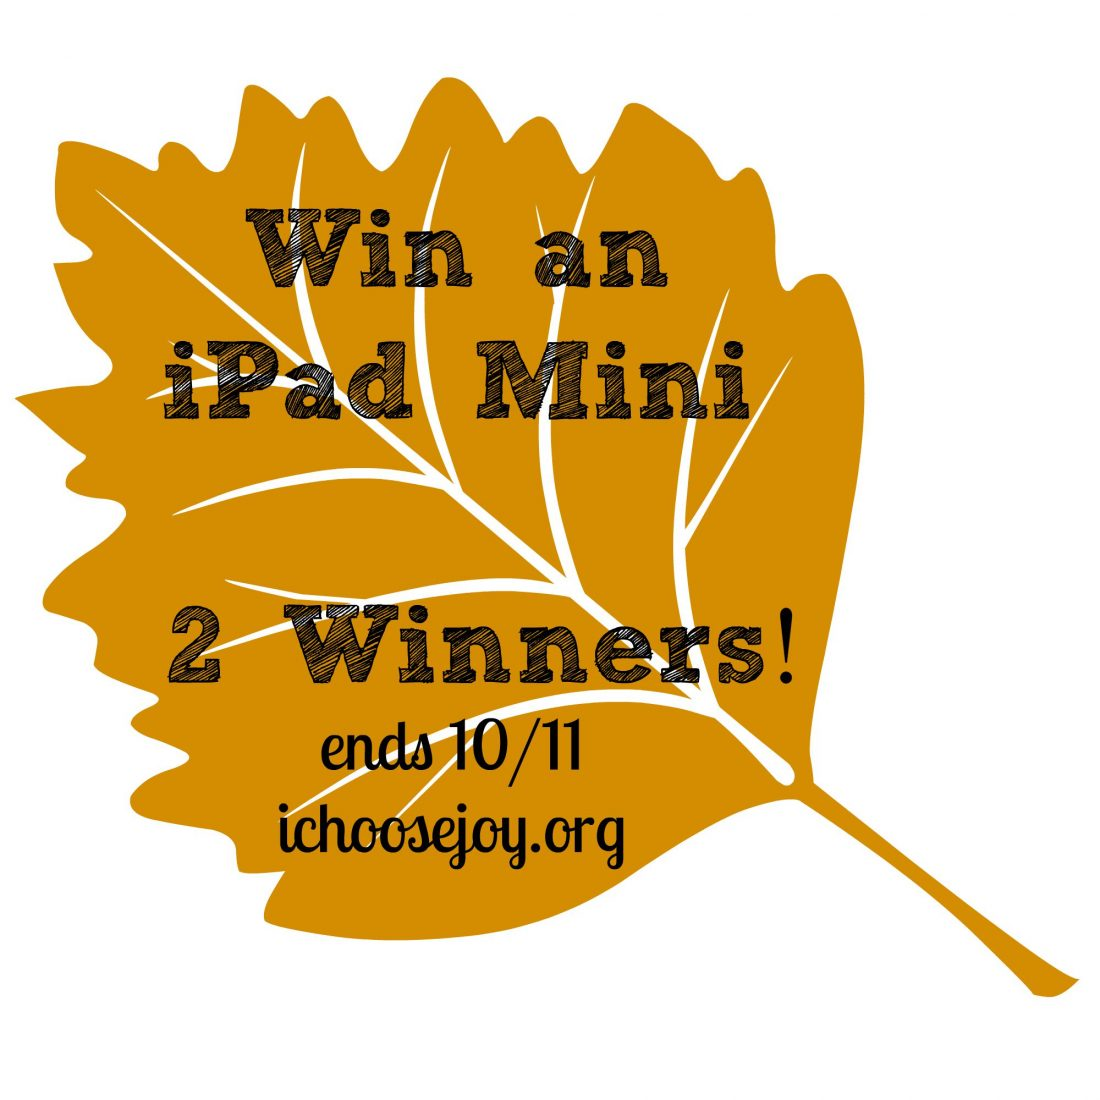 Giveaway: iPad Mini to 2 different winners!